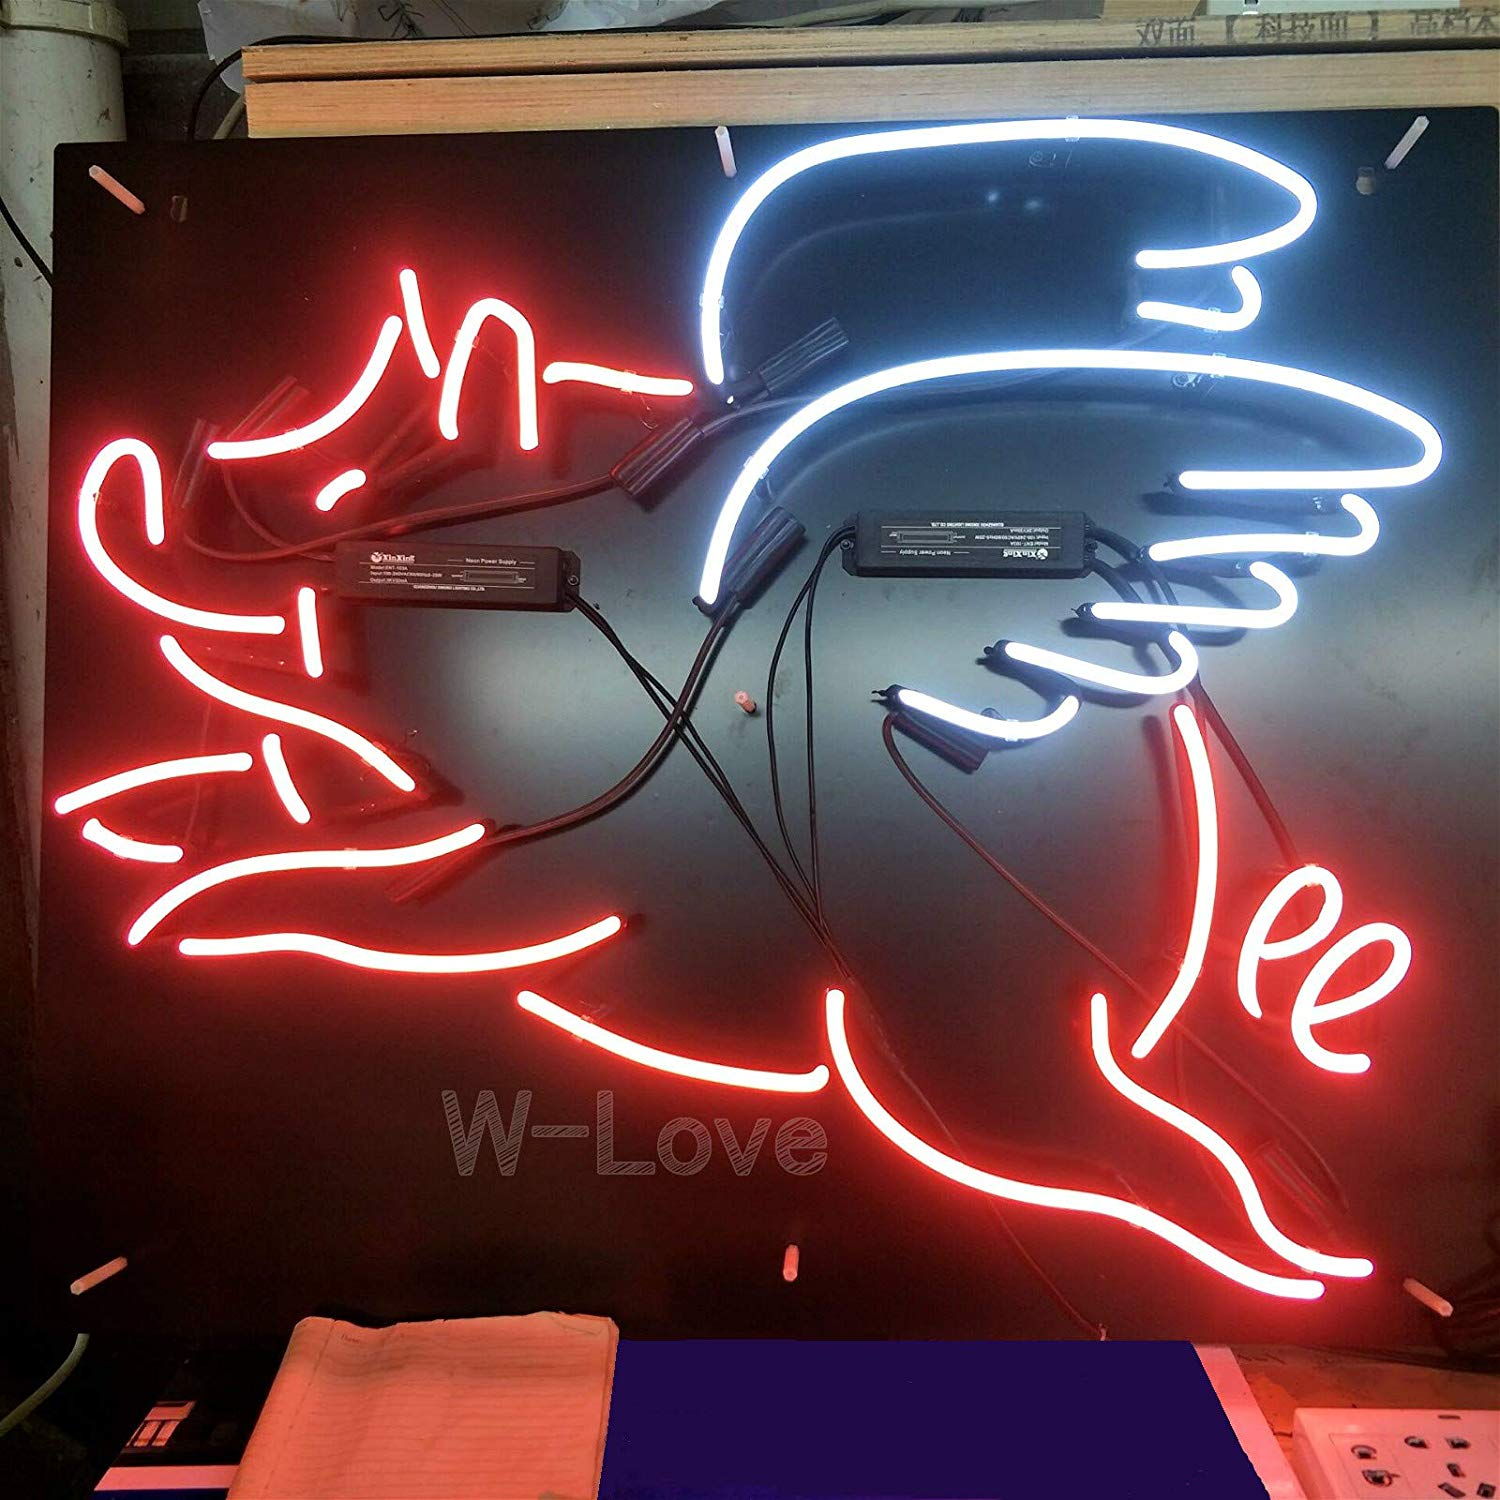 "Mirsne neon Signs, Glass Tube neon Lights, 19"" by 15"" inch Flying Pig neon Signs with Black Background, The Best neon Sign Custom Supplied for a Wide Range of Personal uses."